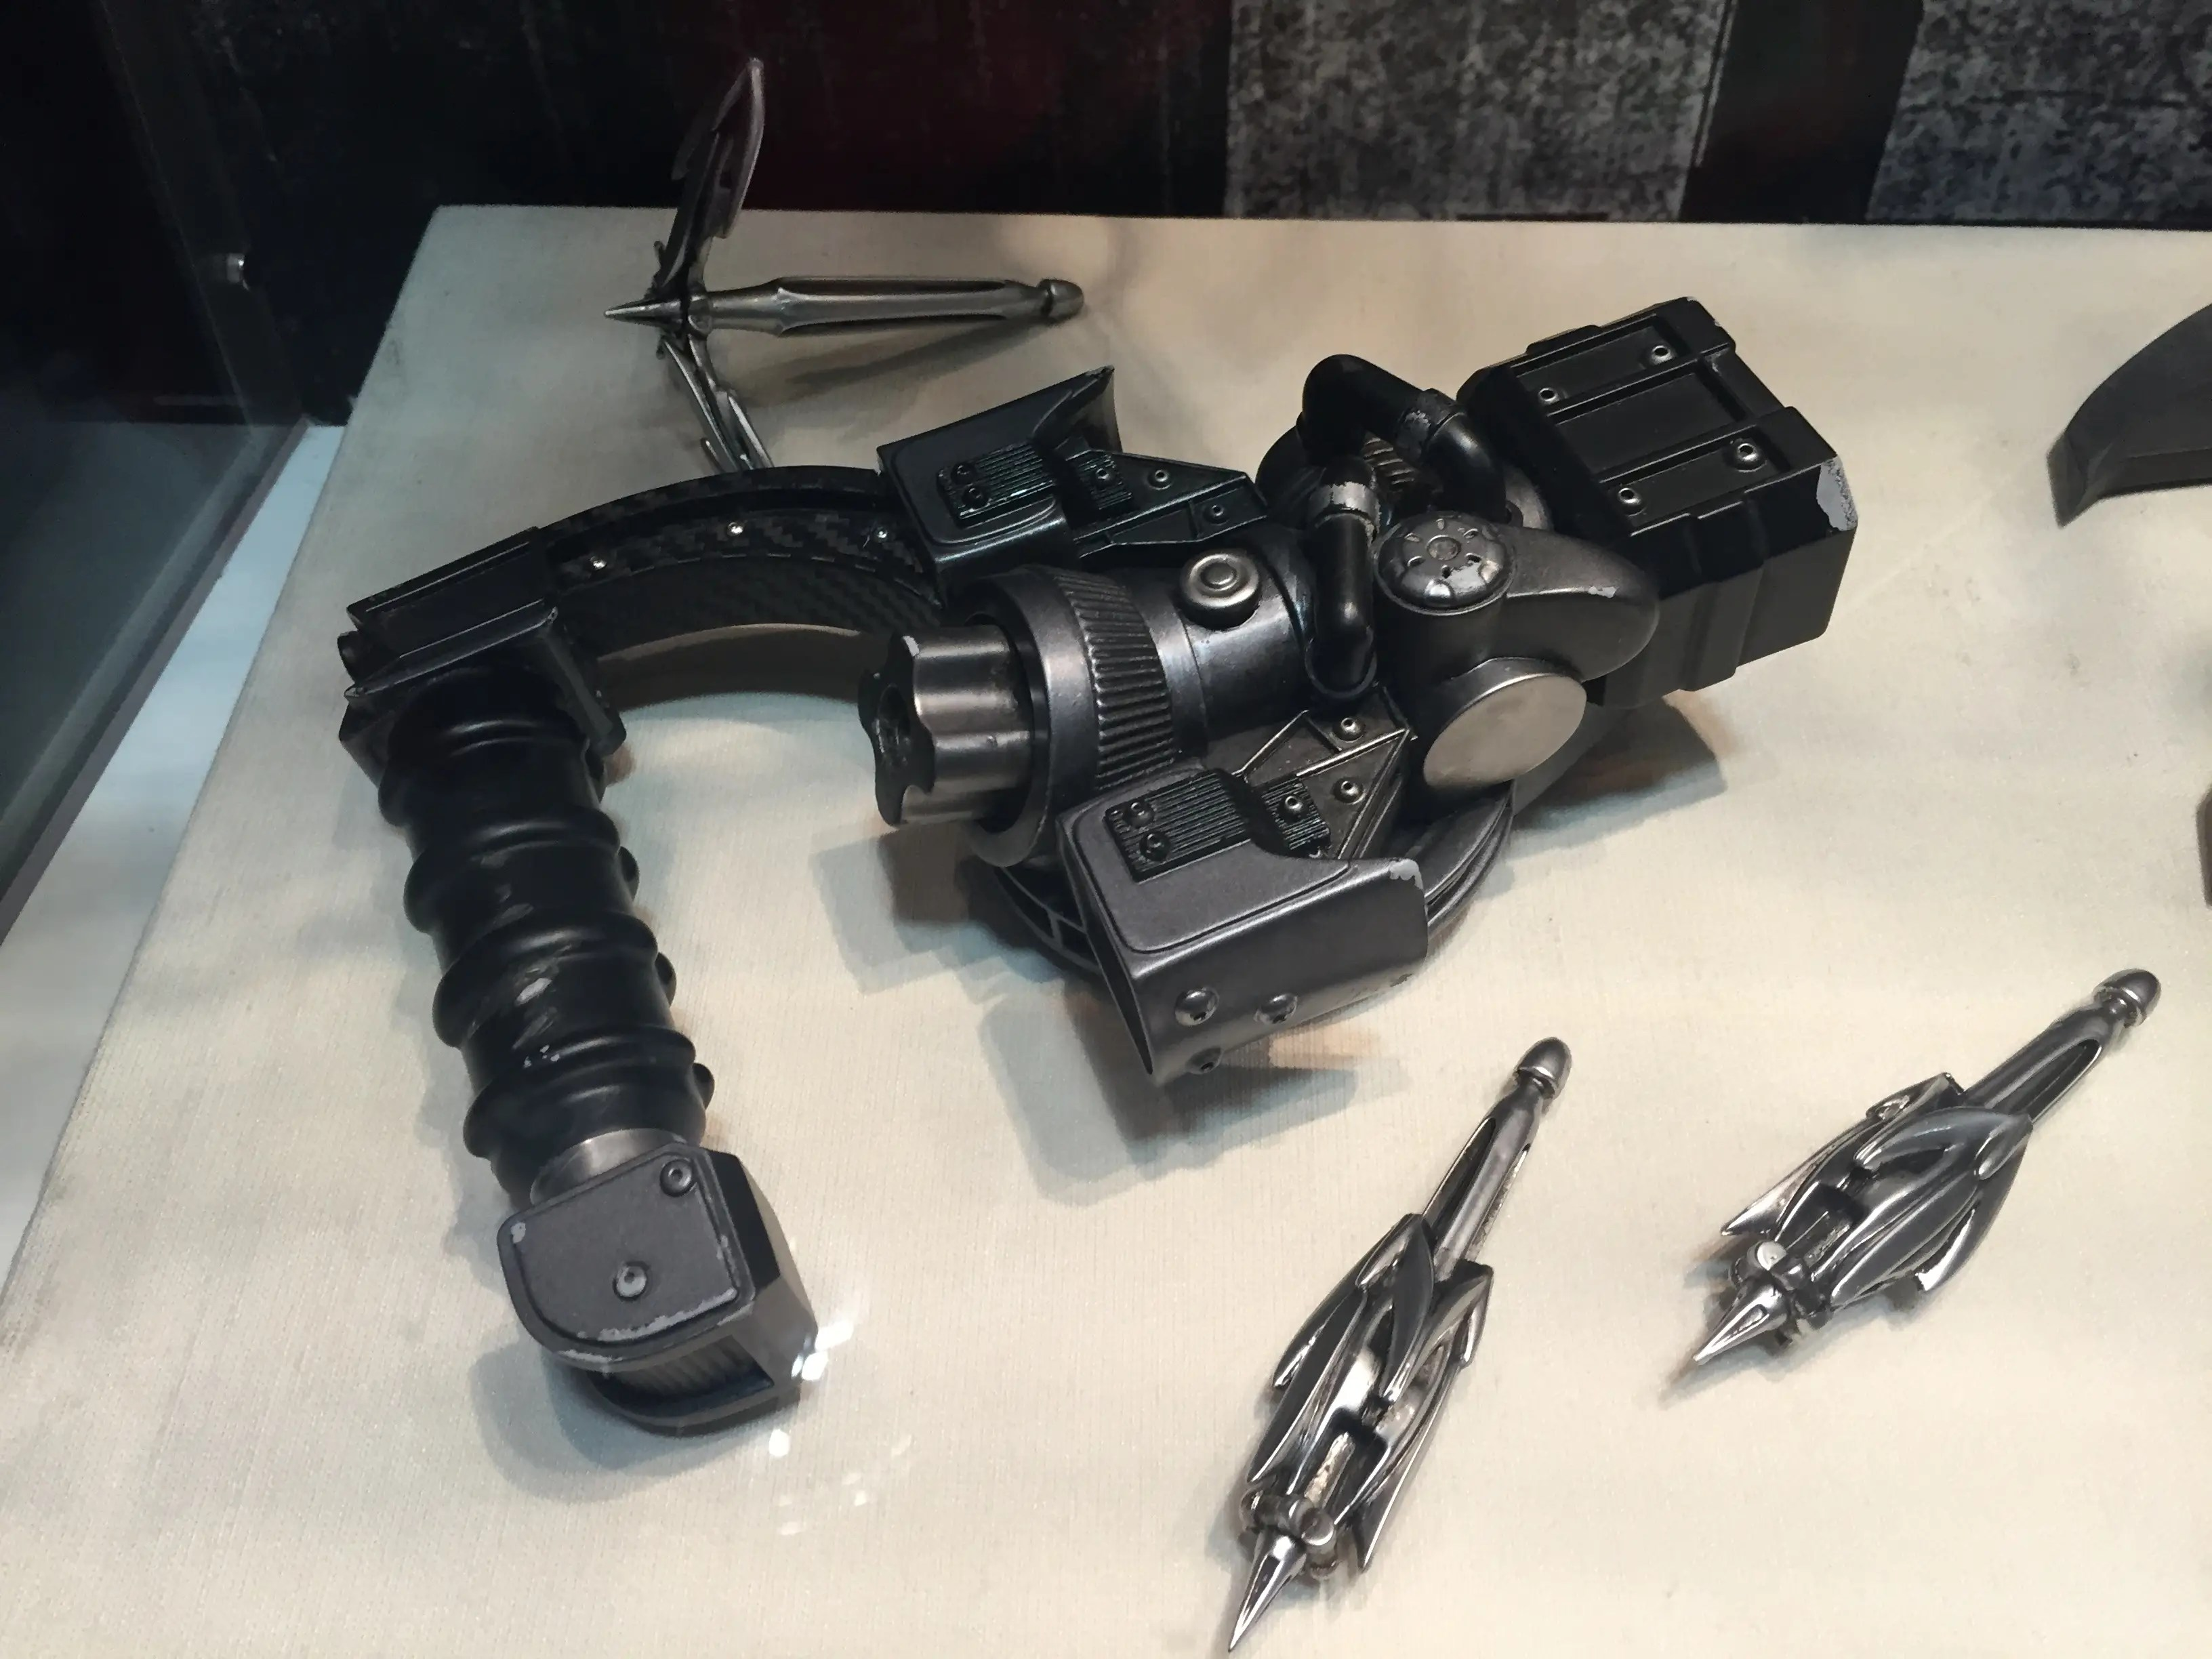 Batman Grapple Gun Prop